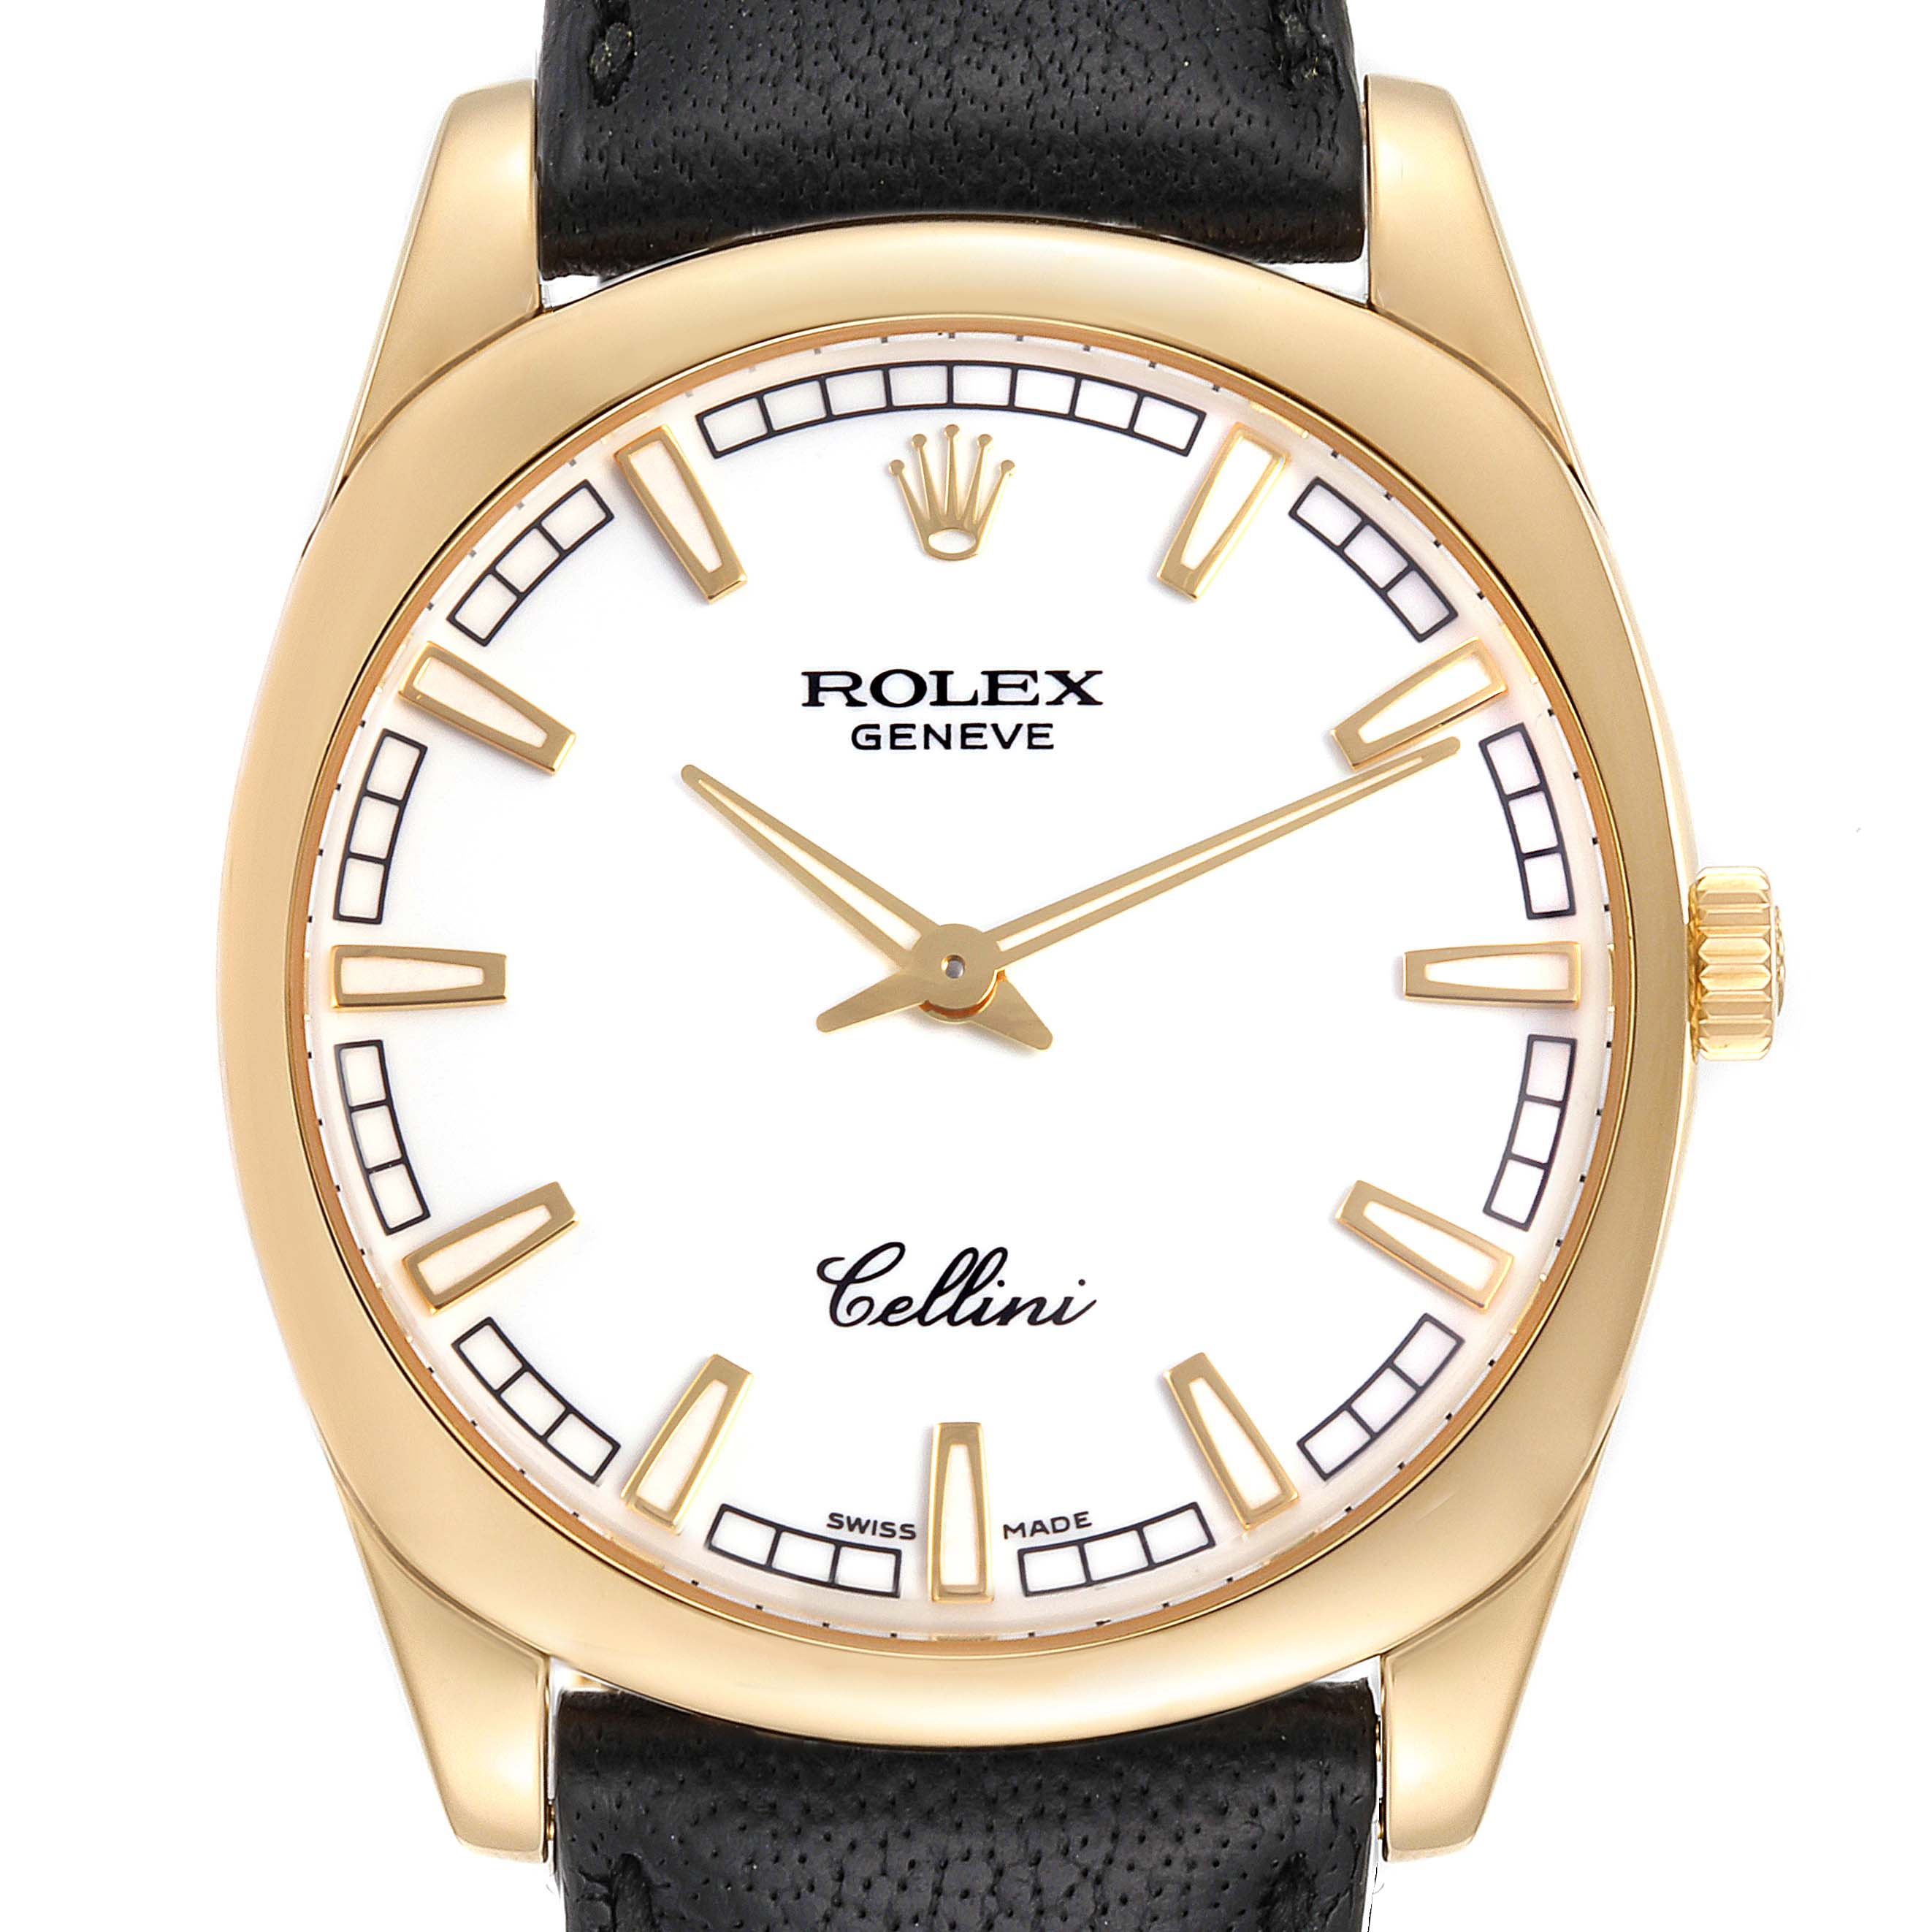 Photo of Rolex Cellini Danaos 18k Yellow Gold White Dial Mens Watch 4243 Box Papers